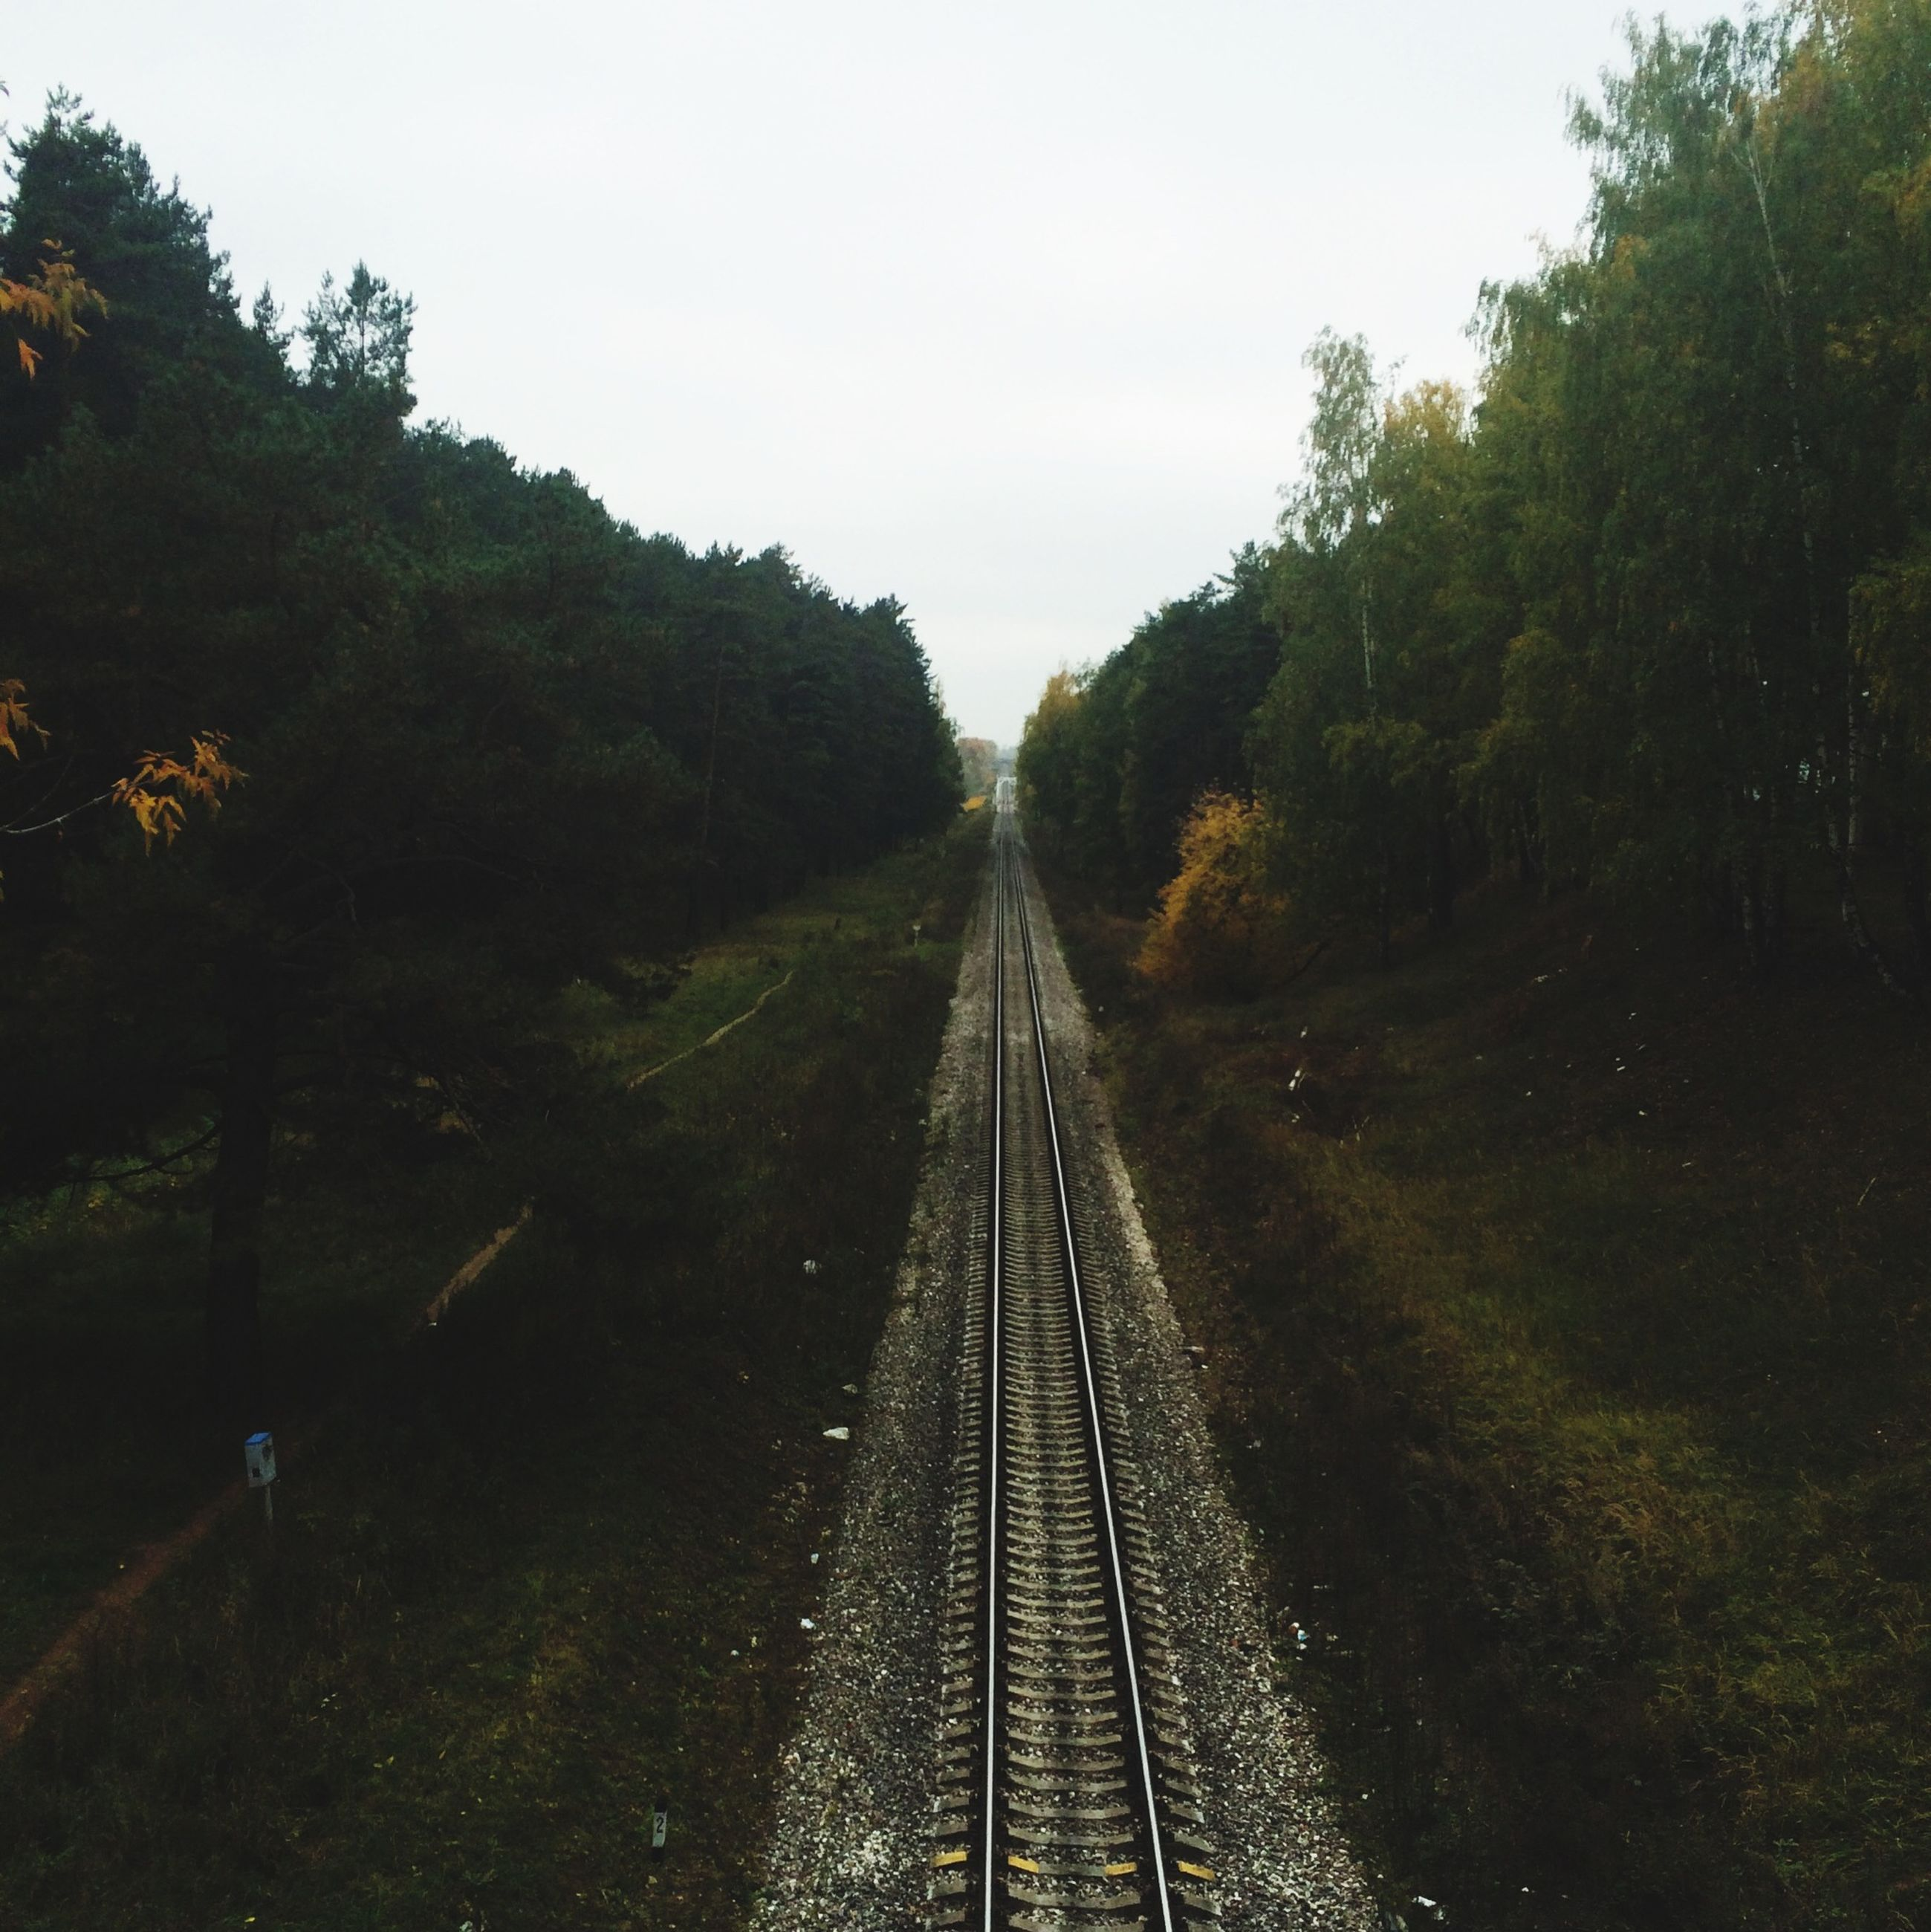 transportation, the way forward, tree, diminishing perspective, railroad track, vanishing point, rail transportation, clear sky, growth, sky, long, forest, tranquility, nature, day, connection, no people, railway track, straight, outdoors